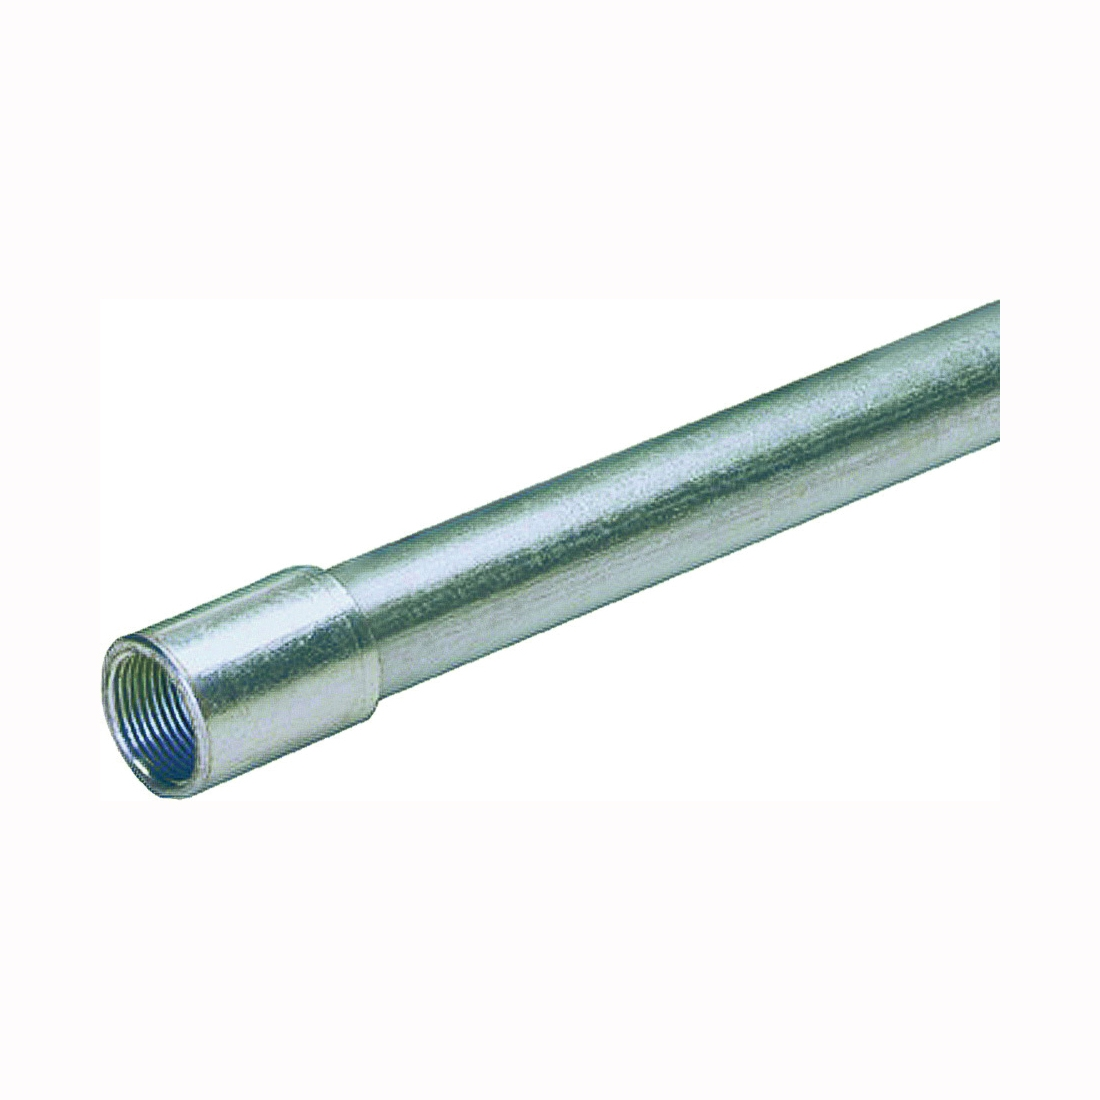 Picture of Allied Tube & Conduit 103069 Rigid Conduit, 1.05 in OD, 10 ft L, 3/4 in Trade, Galvanized Steel